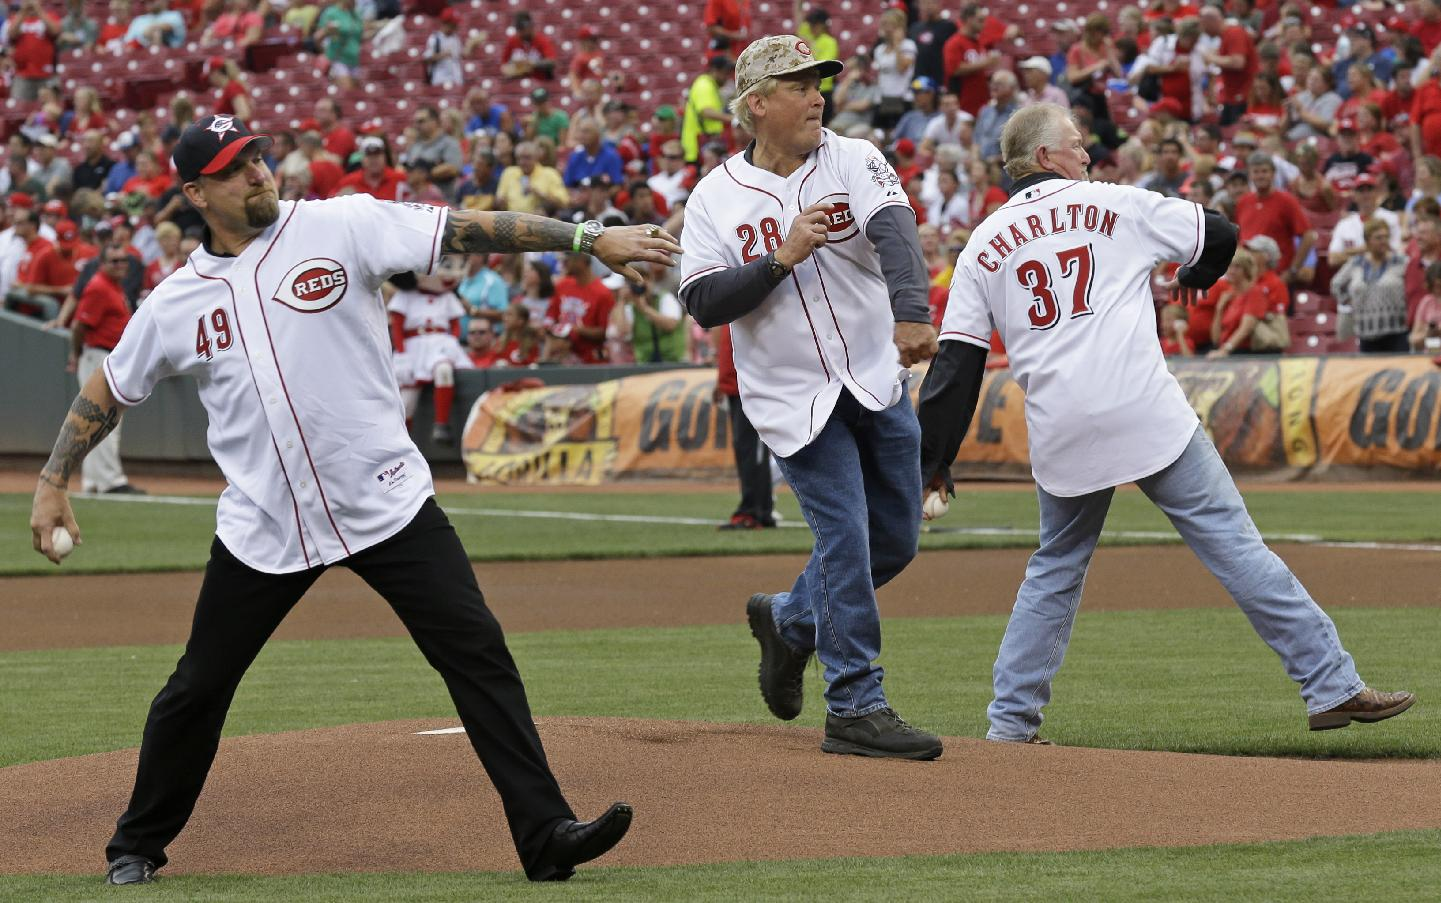 MLB Network to feature Reds' 'Nasty Boys' from 1990